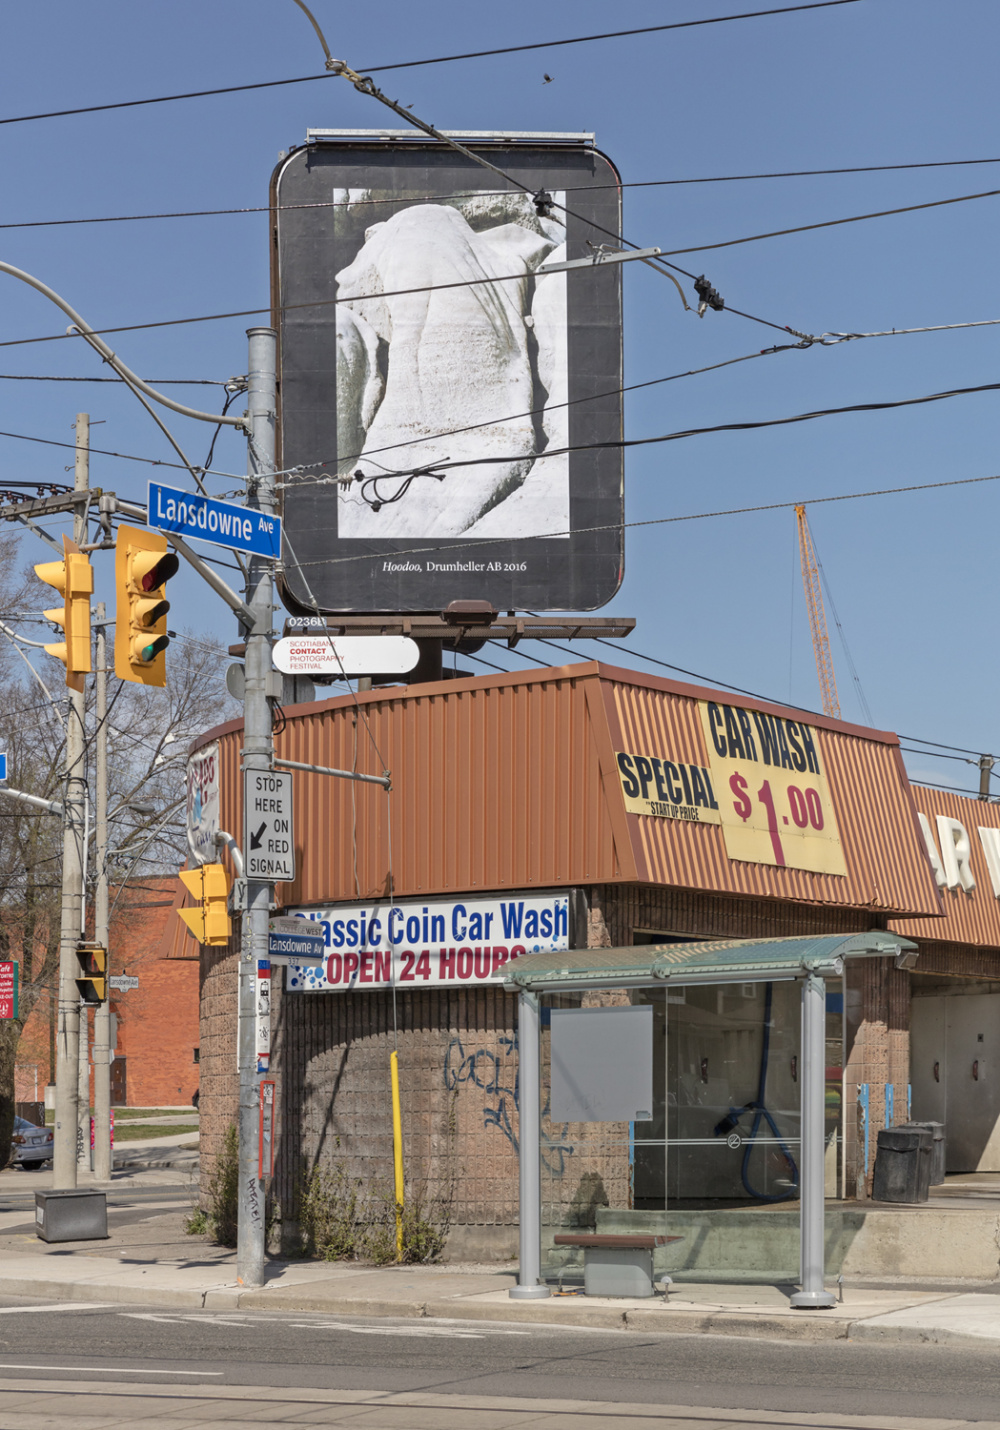 Seth Fluker, Blueberry Hill, installation view of 6 billboards in Toronto. Lansdowne Ave at College and Dundas St W. 2017. Photo by Toni Hafkenscheid.